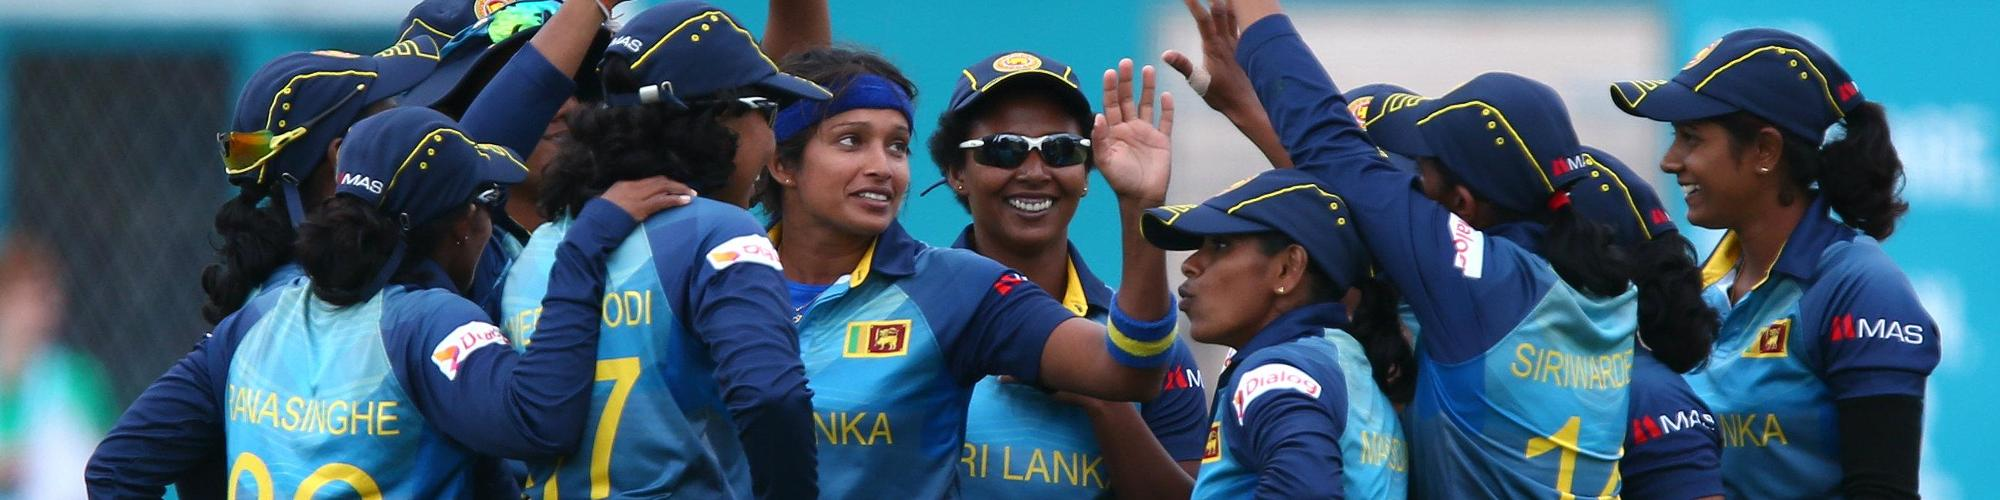 Sri Lanka women